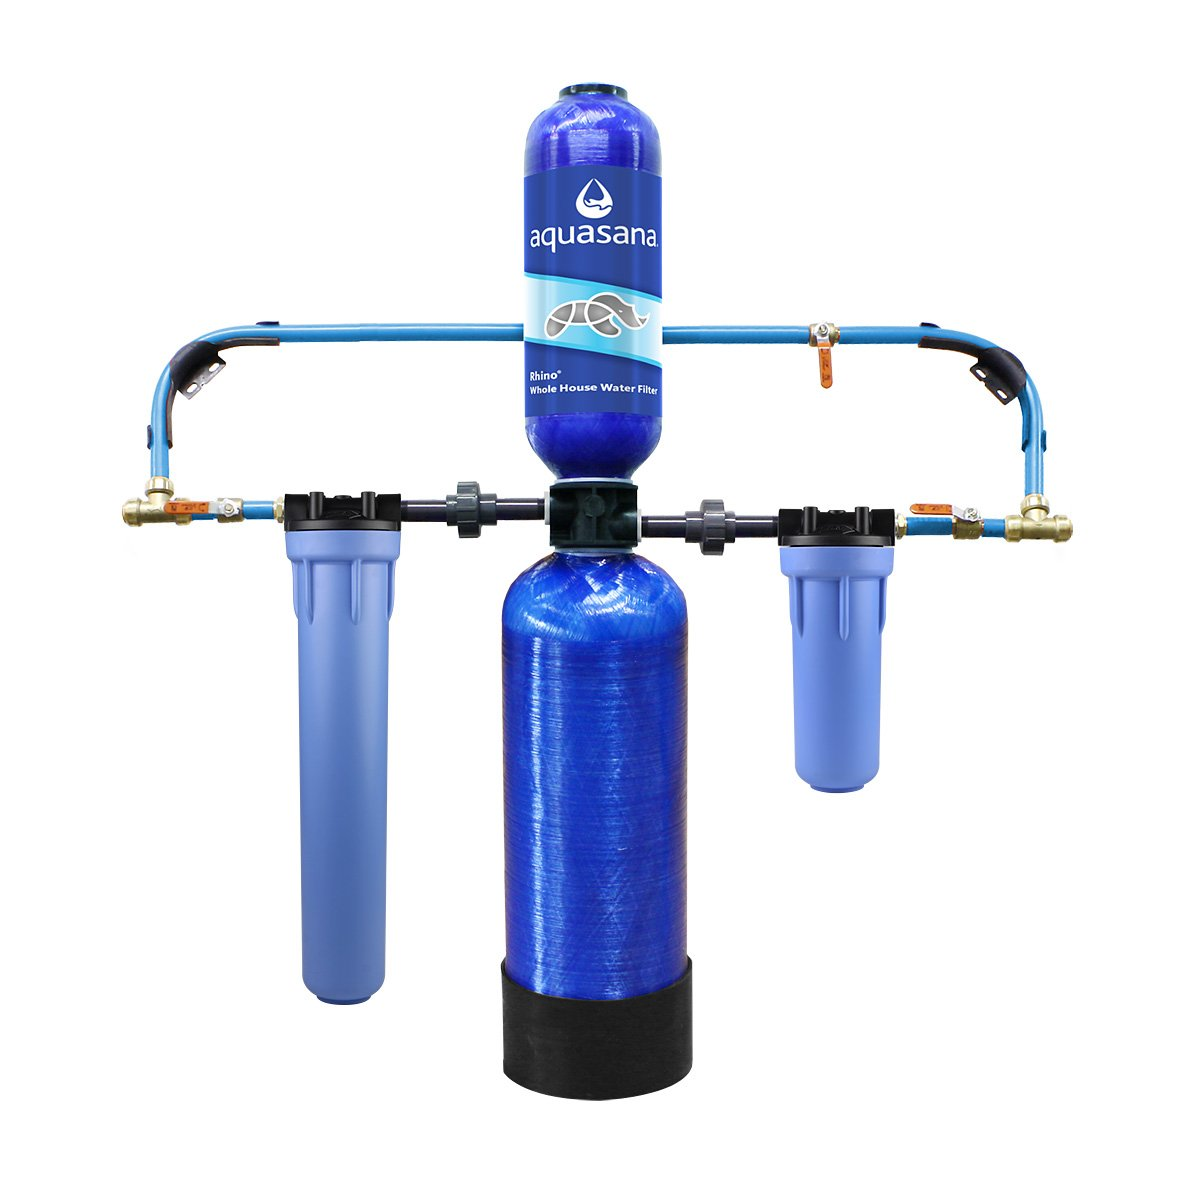 Aquasana 10-Year, 1,000,000 Gallon Whole House Water Filter with Professional Installation Kit